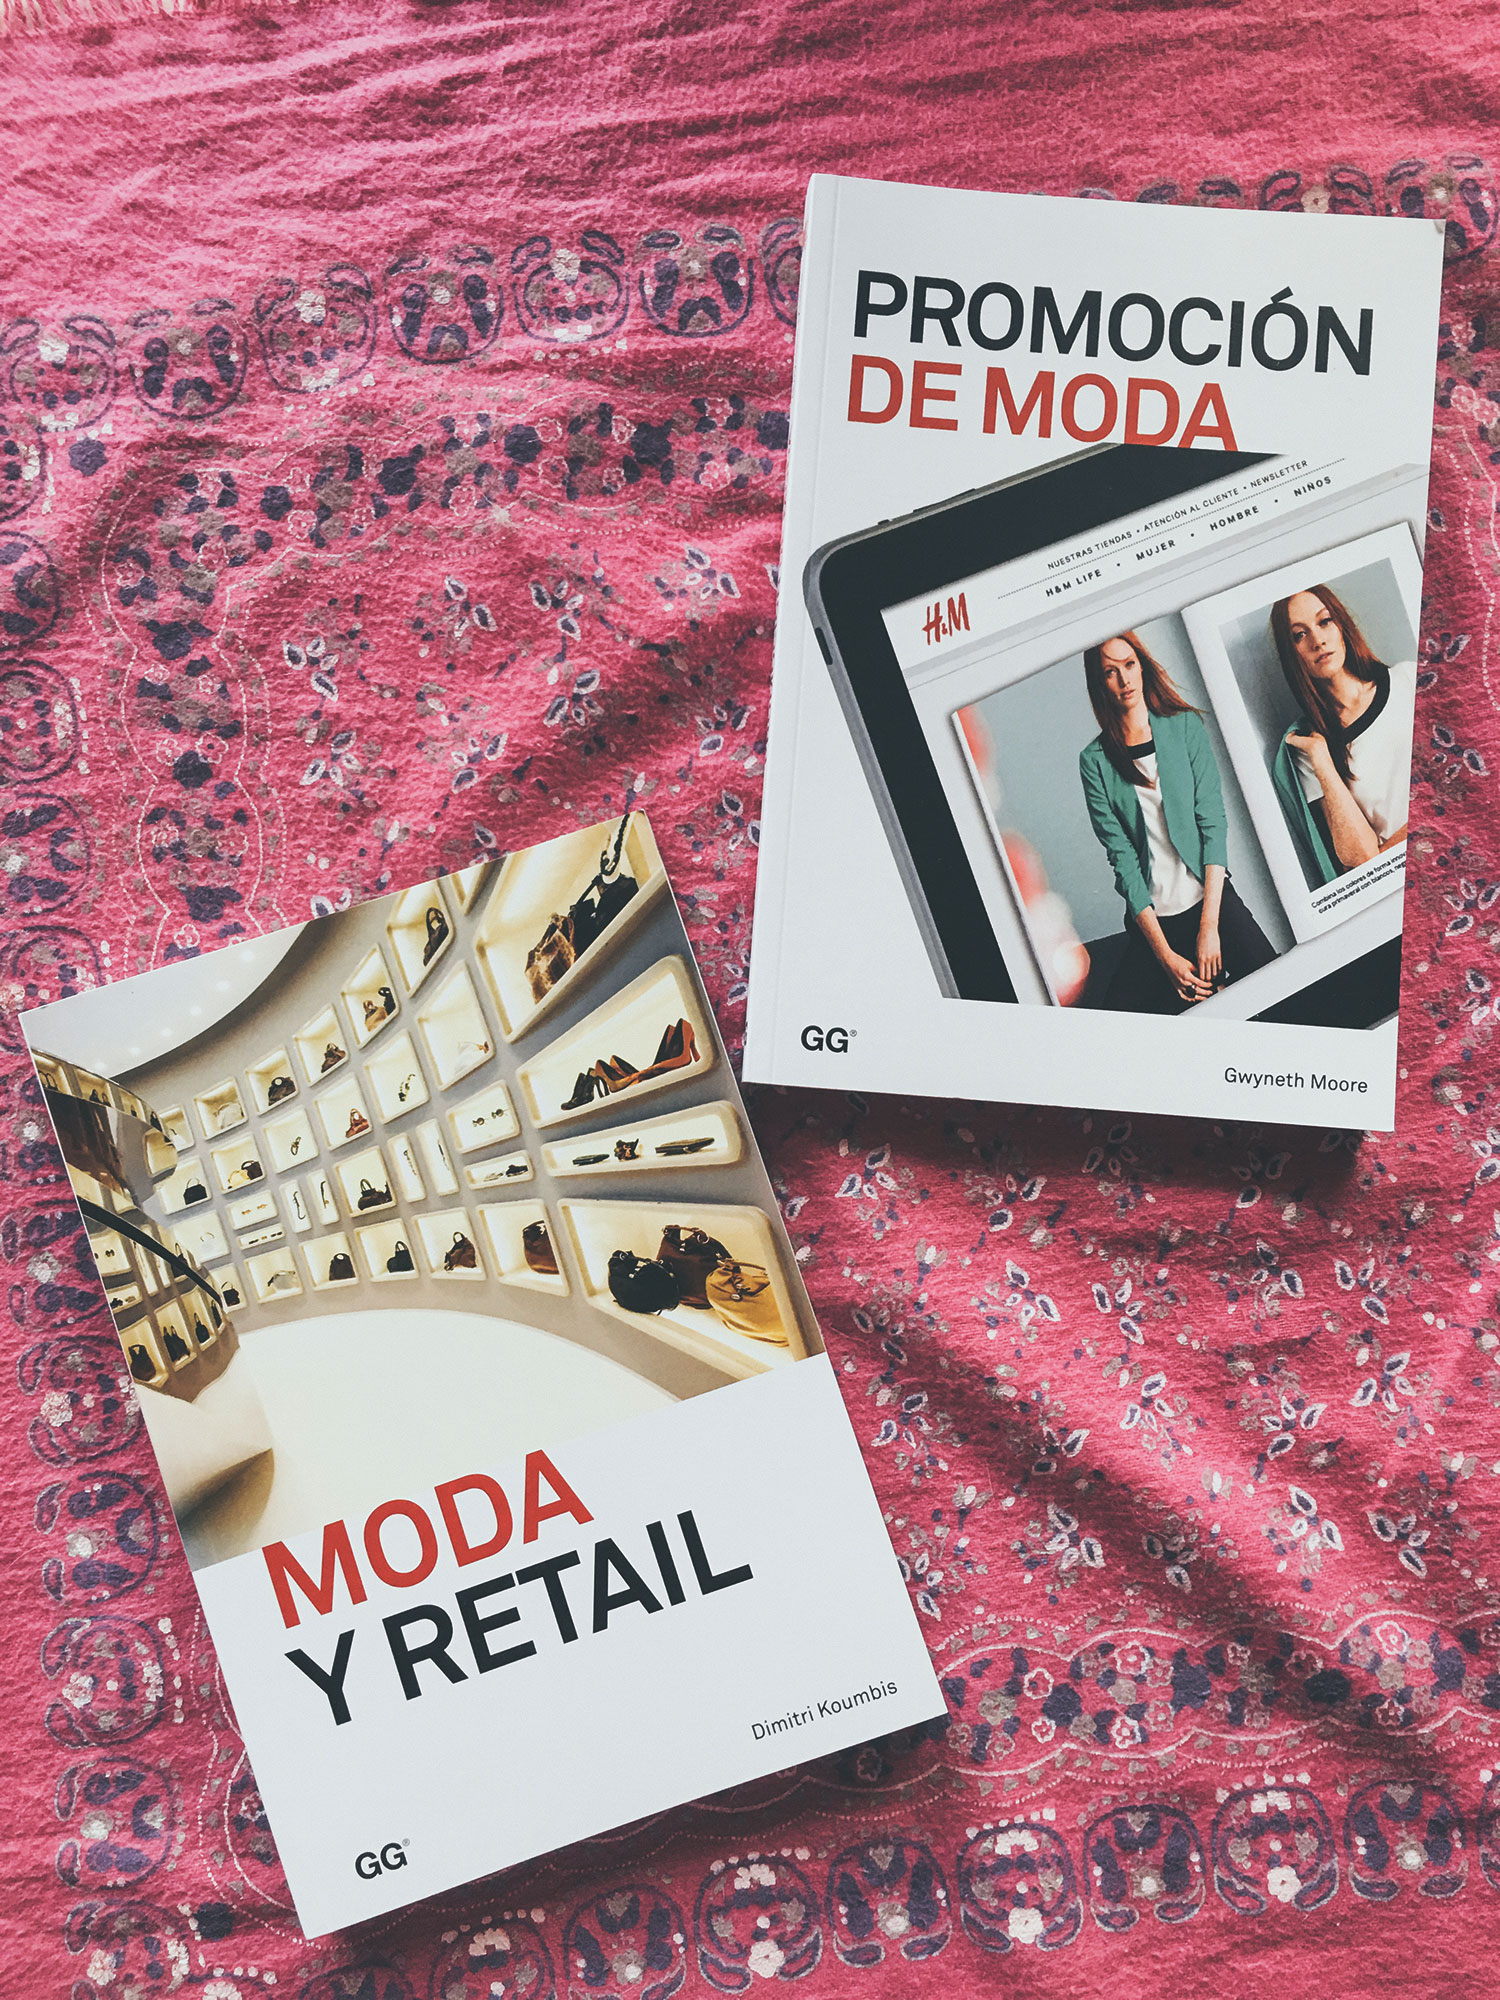 fashion, fashionista, moda, blogger argentina, fashion blogger, fashion blogger argentina, blogger, lifestyle blogger, bujo, bullet journal, agenda, planner addict, book fair, feria del libro, feria del libro 2017, book fair 2017